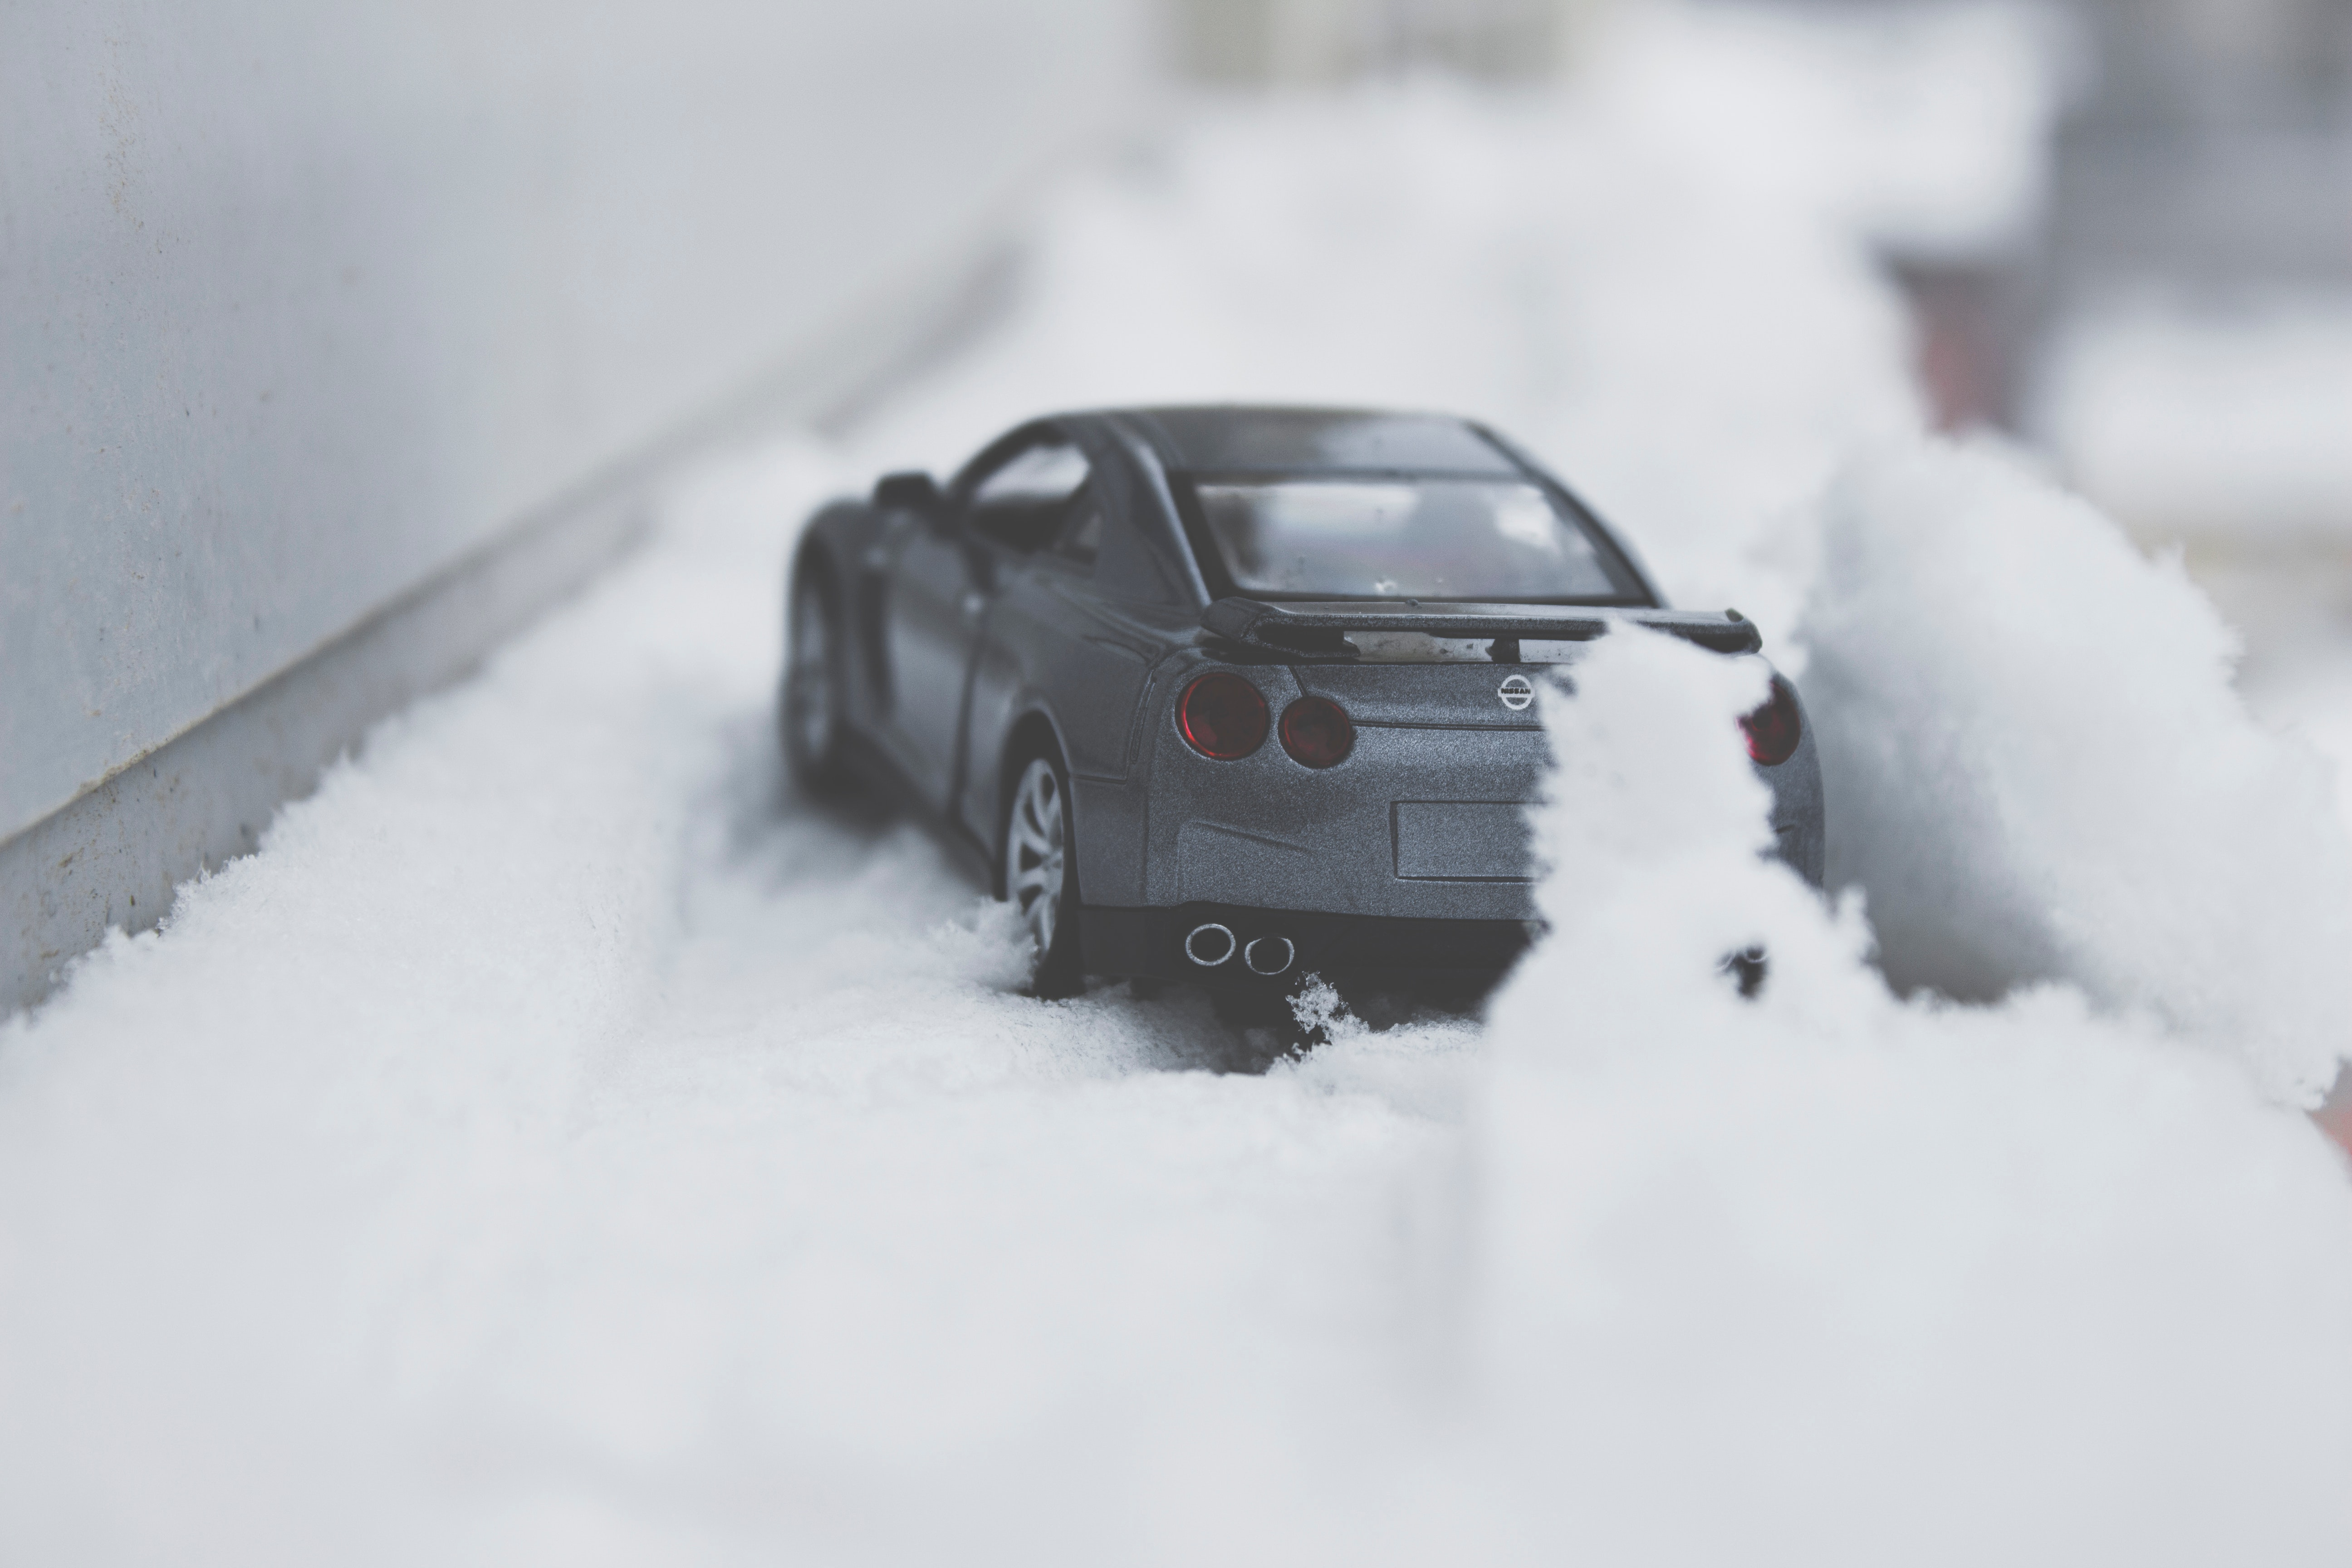 Close-up Photo of Toy Car on Snow, Action, Road, Weather, Vehicle, HQ Photo